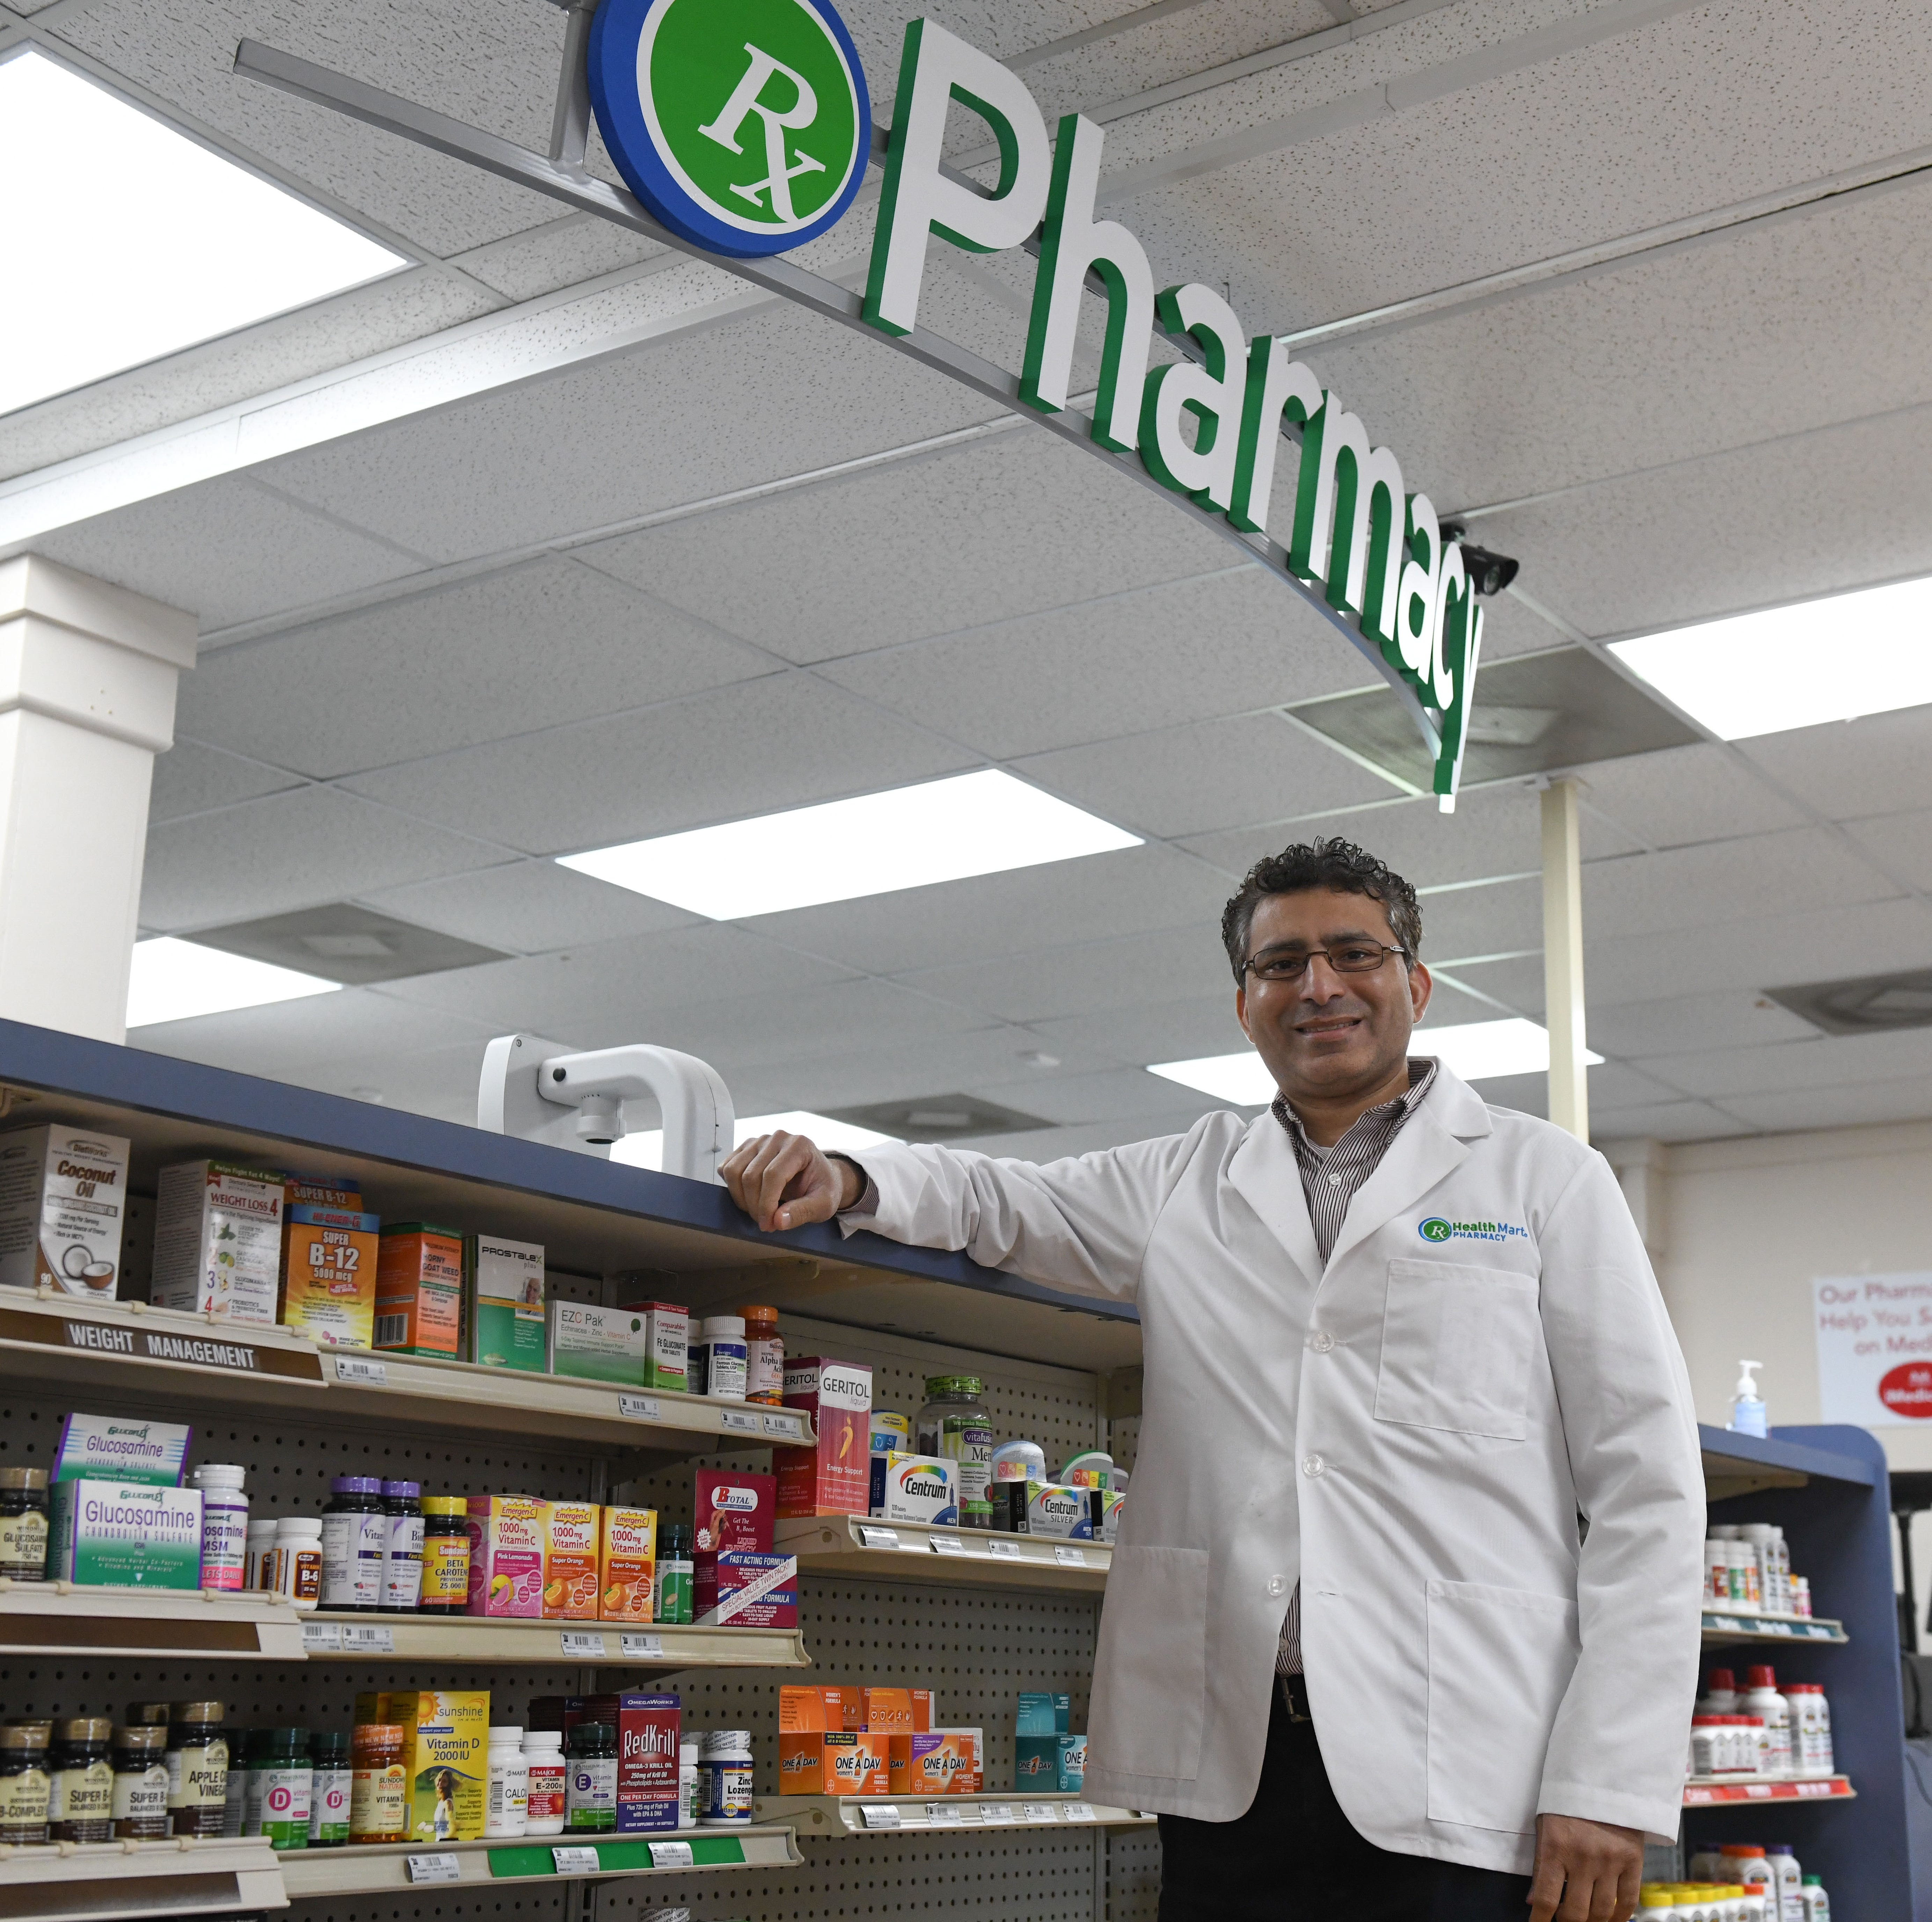 'He has a gun': Armed pharmacist chases off would-be robbers